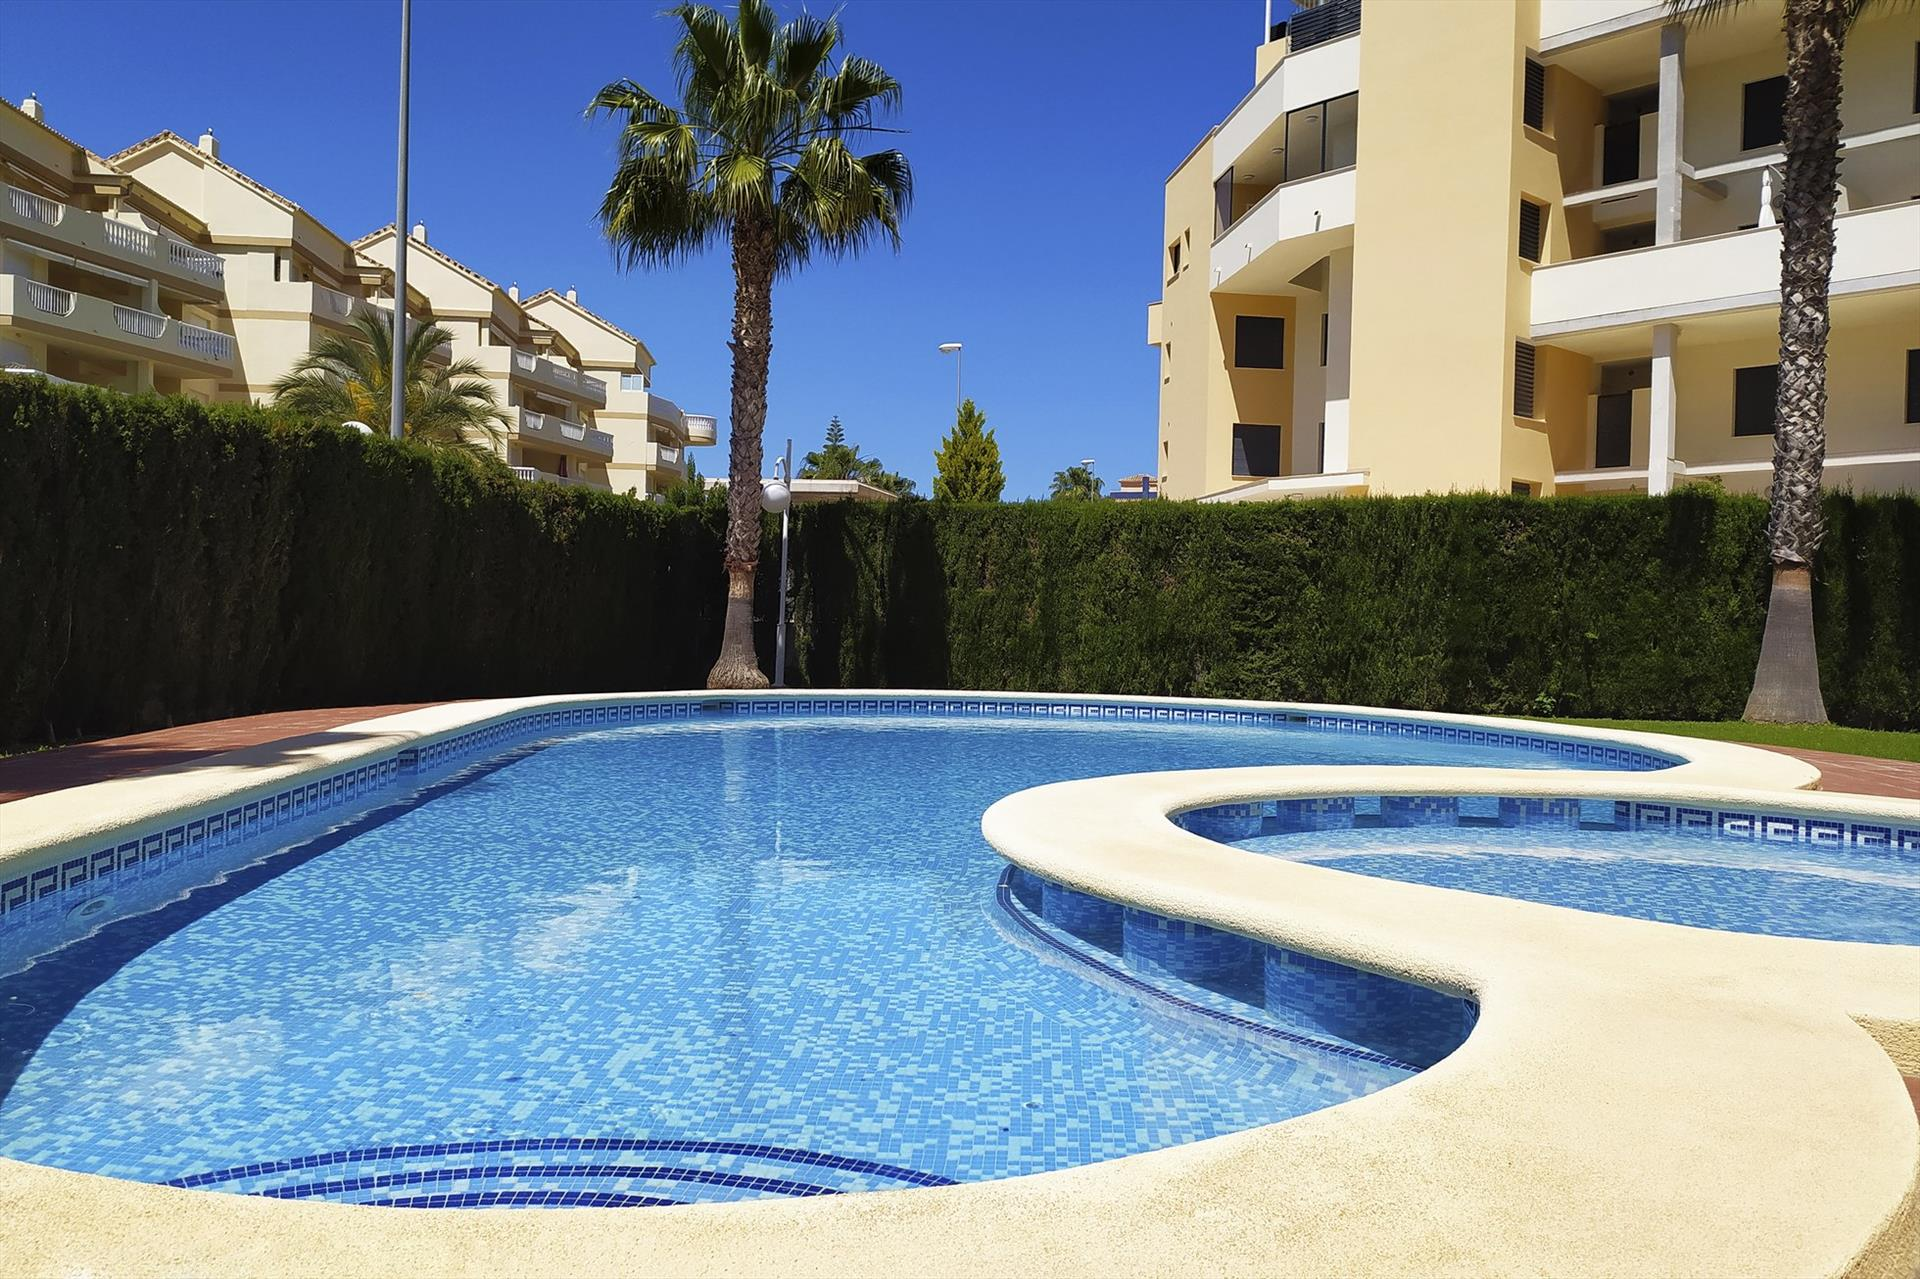 AP1104 Denia Daly cerca de la Playa, Classic and comfortable apartment  with communal pool in Denia, on the Costa Blanca, Spain for 3 persons.....